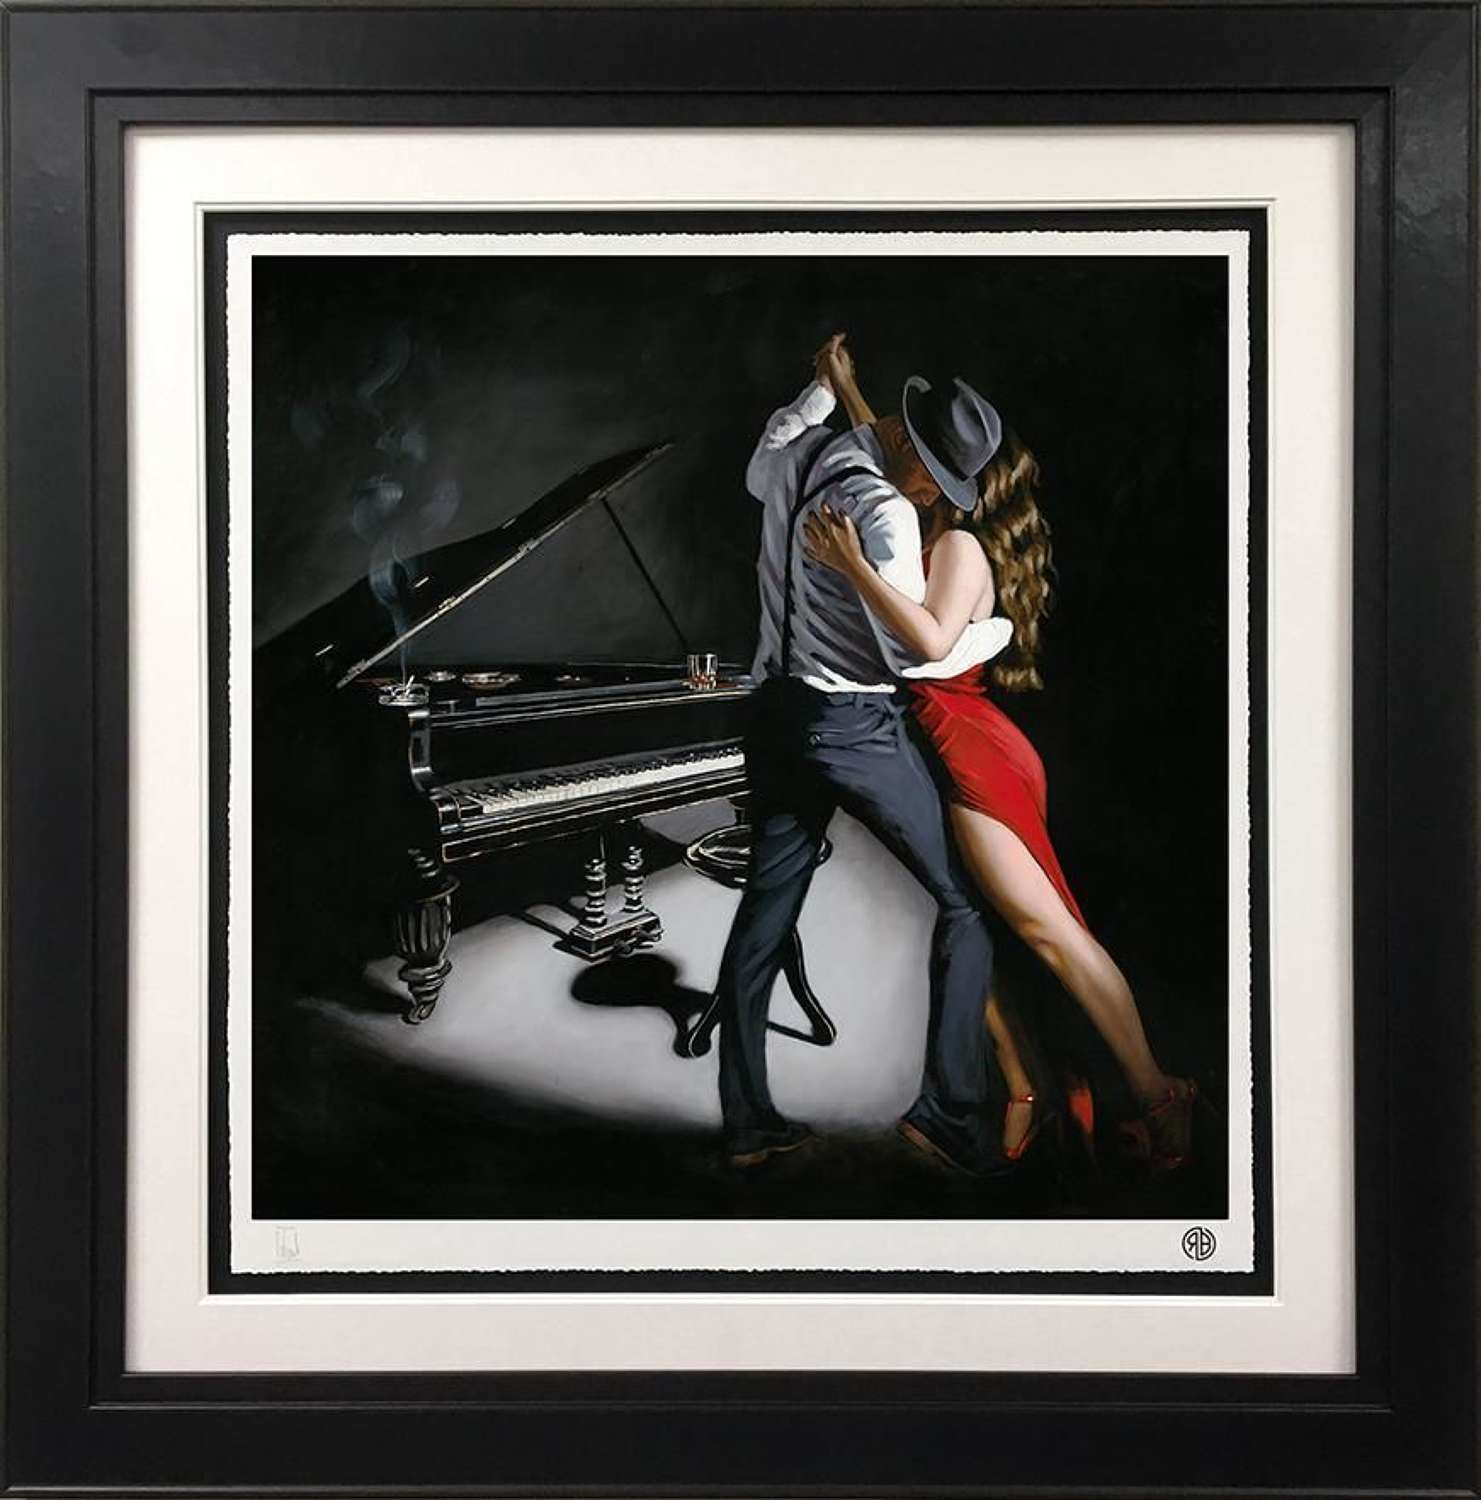 My Heart Is Still Dancing Framed Art Print by Richard Blunt